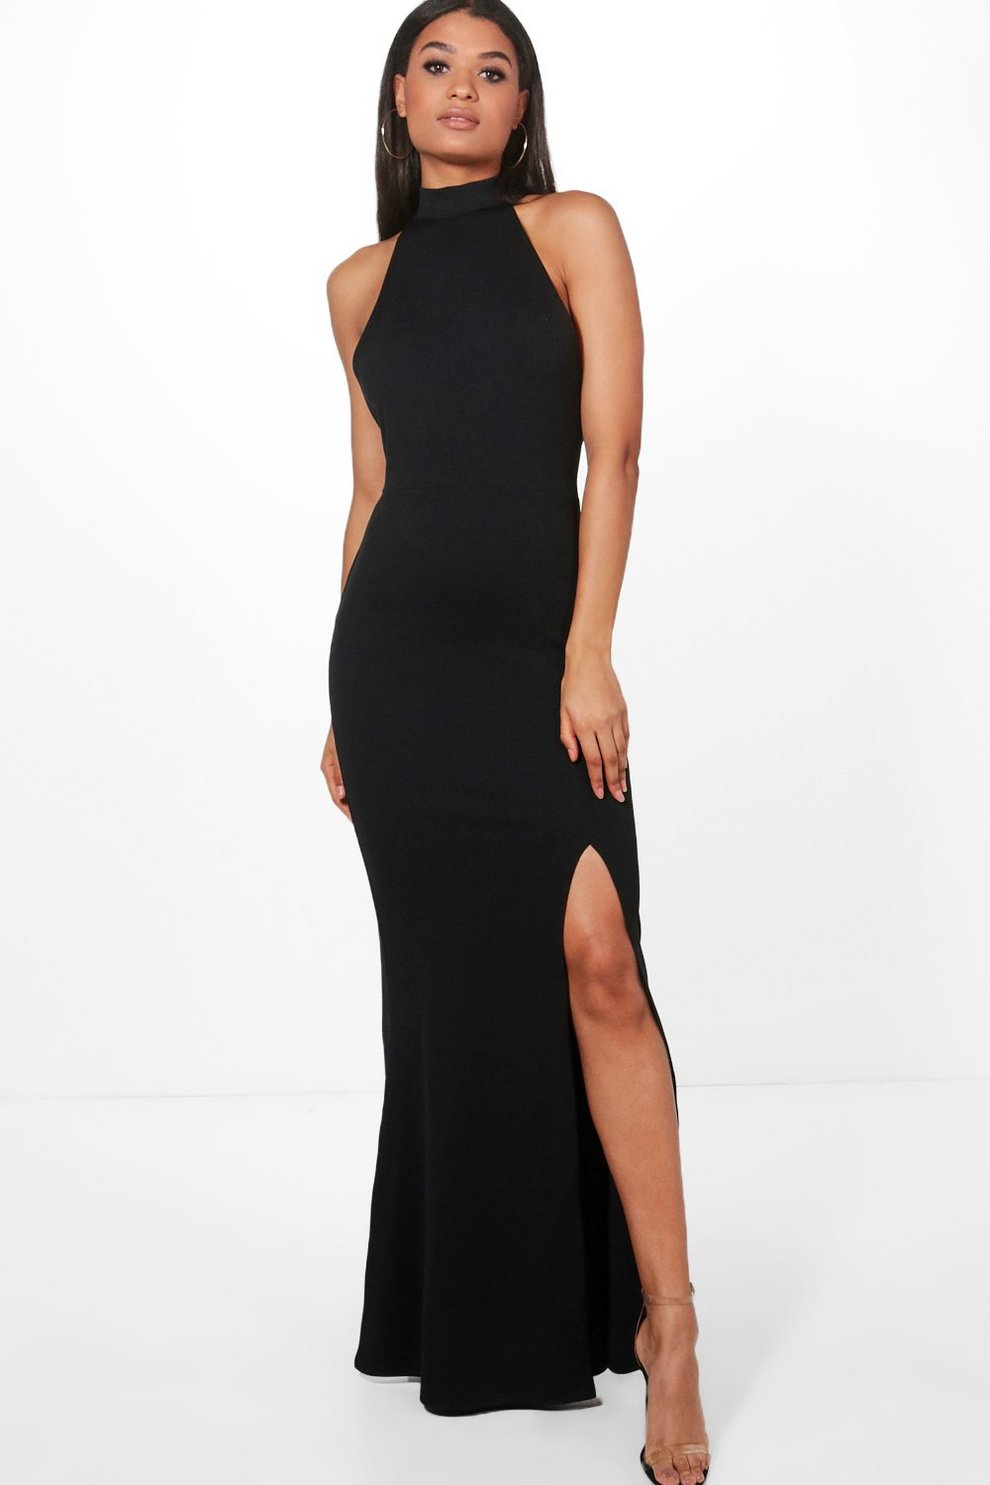 e9fe64b746a Womens Black High Neck Extreme Split Front Maxi Dress. Hover to zoom